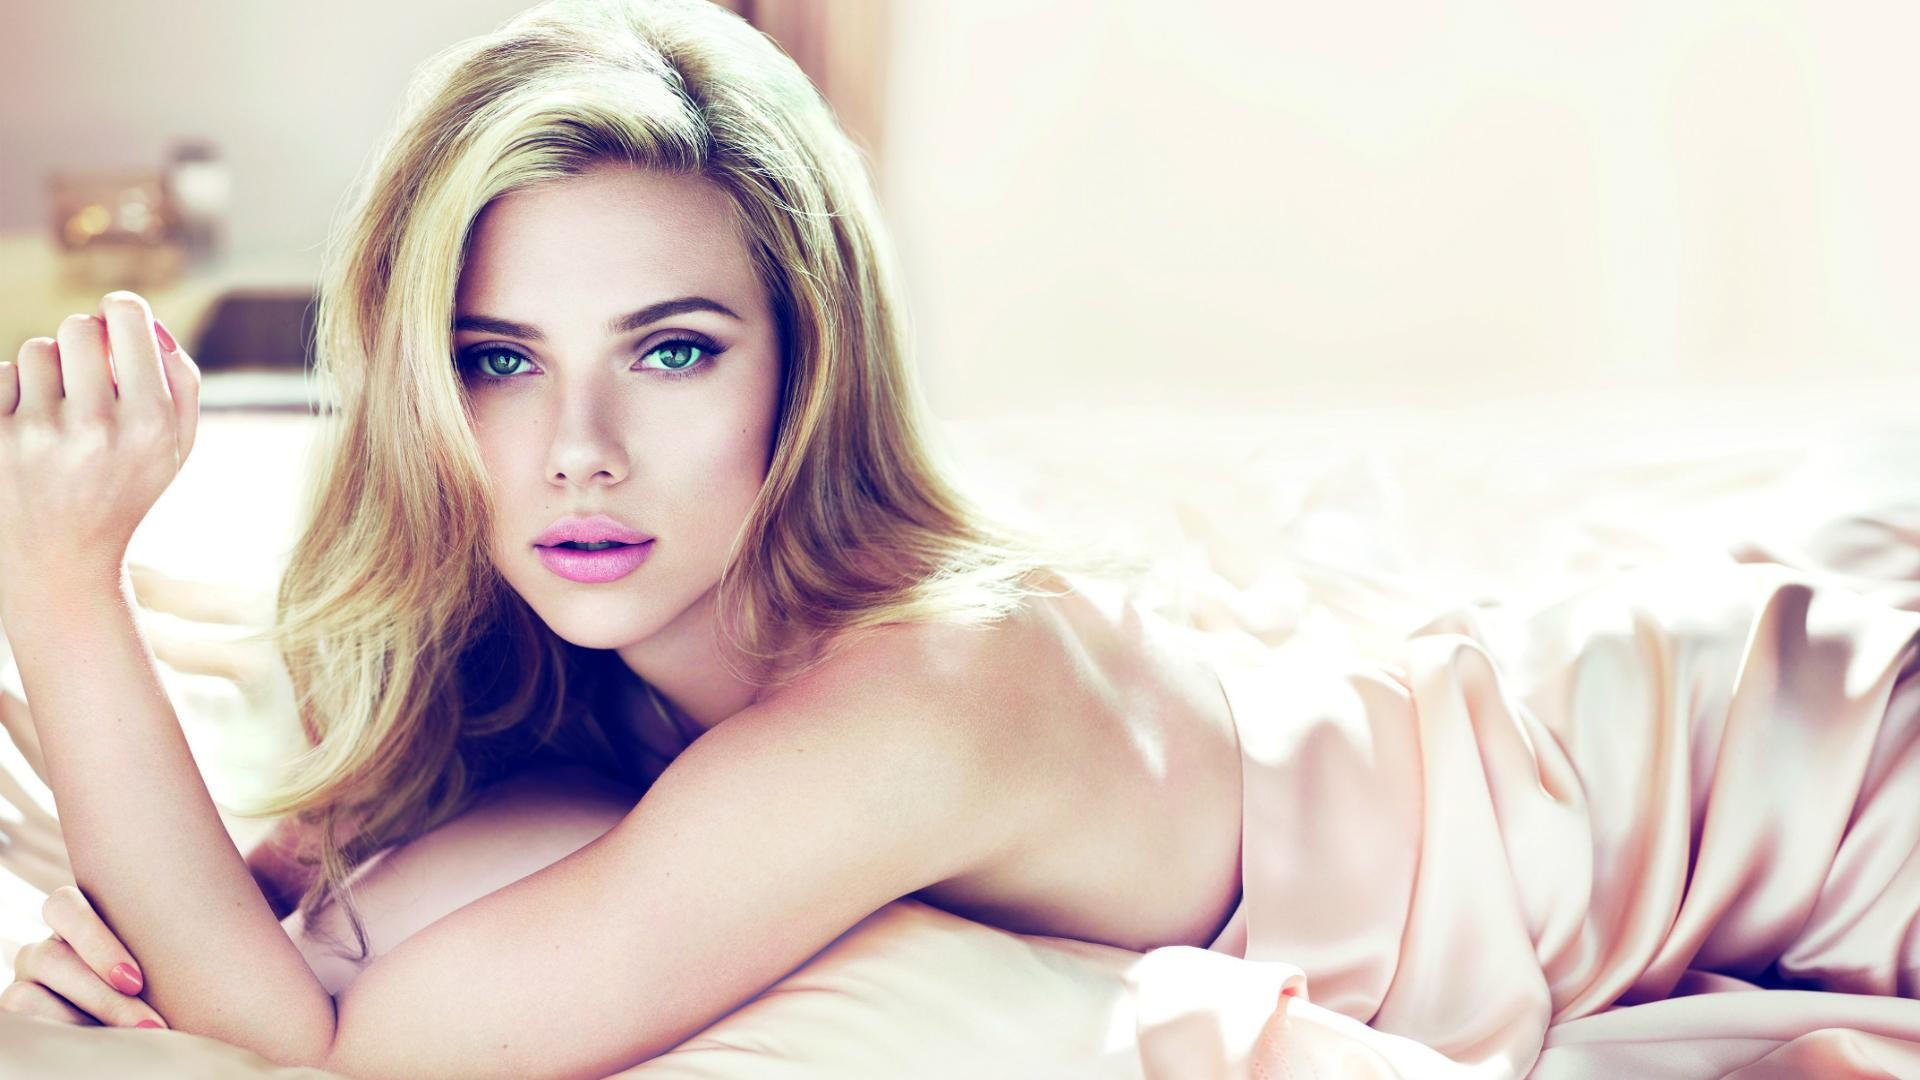 Scarlett-Johansson-Blue-Eyes-Full-HD-Wallpaper-2